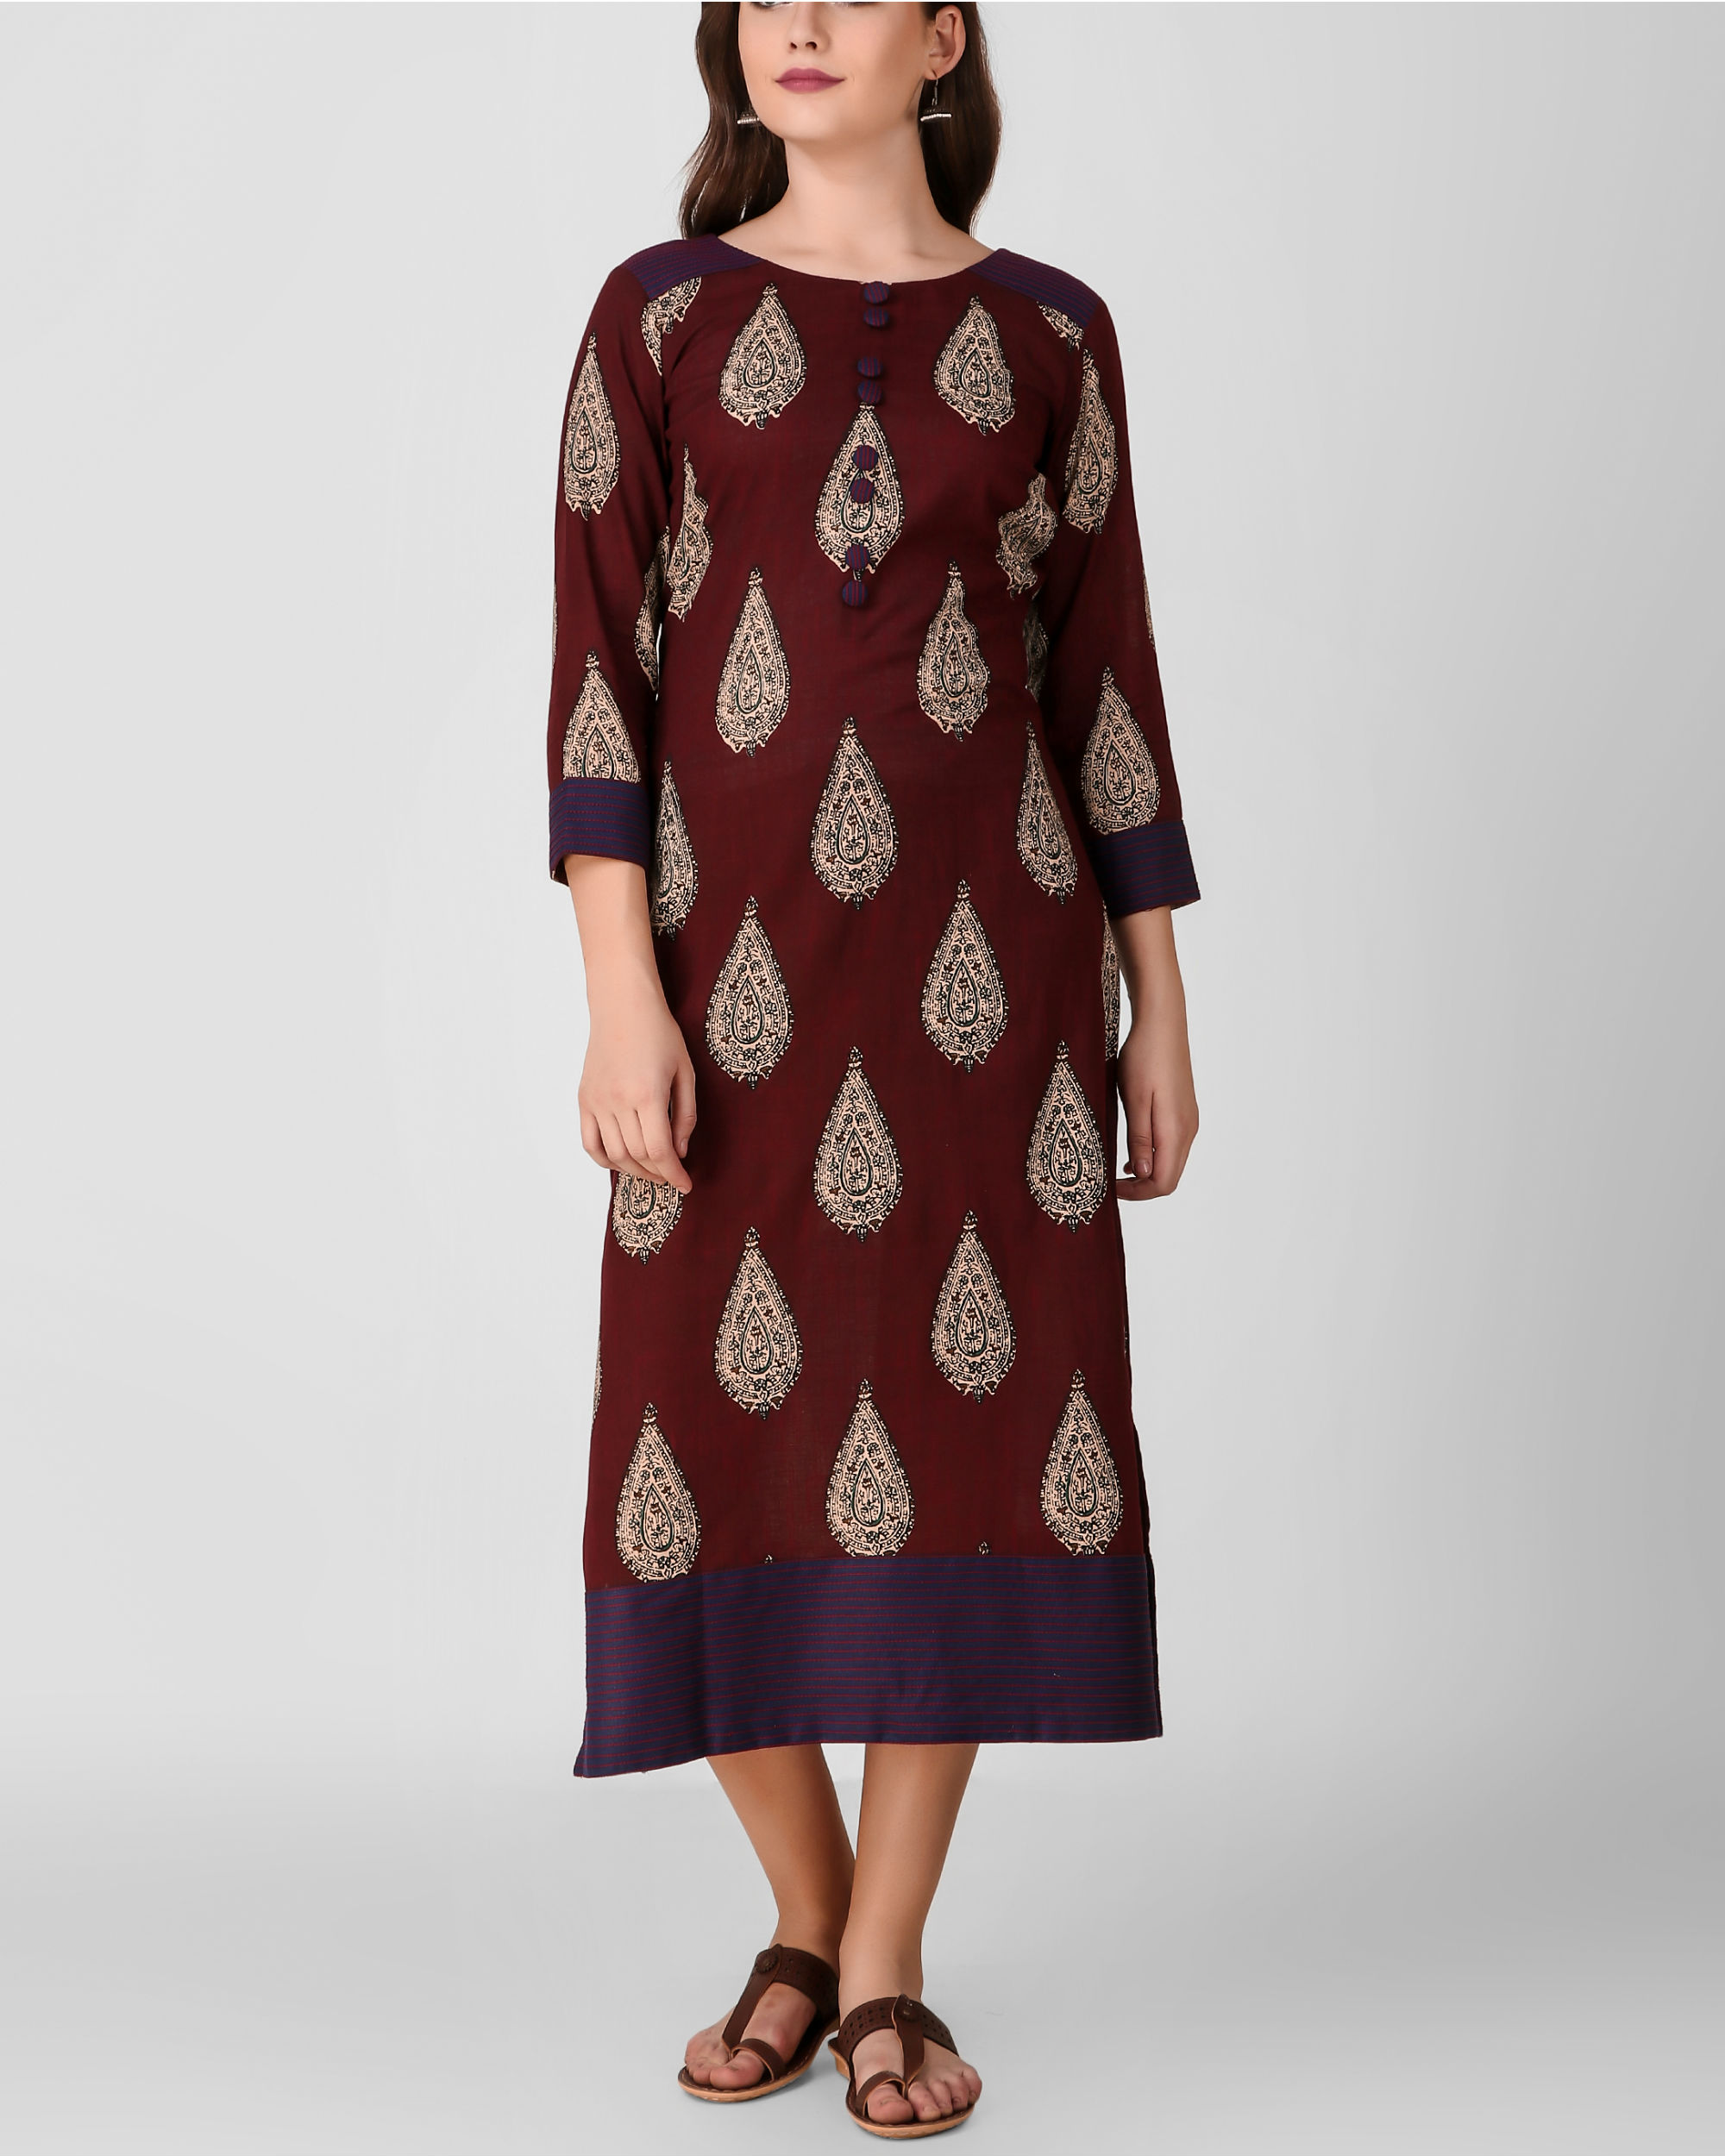 Reddish brown kalamkari dress